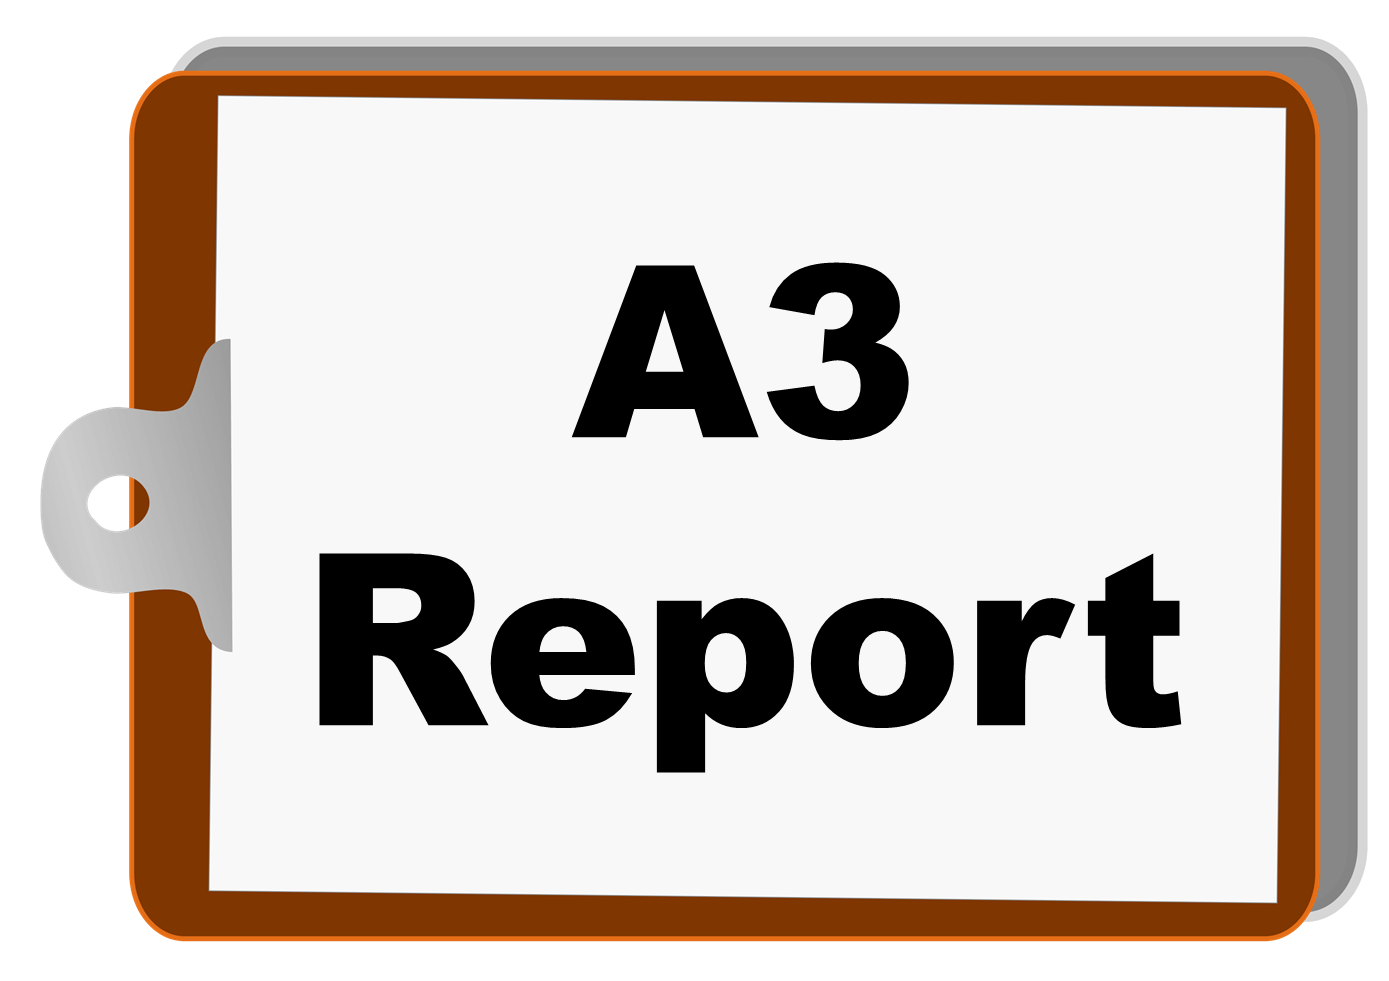 A3 Report on Clipboard